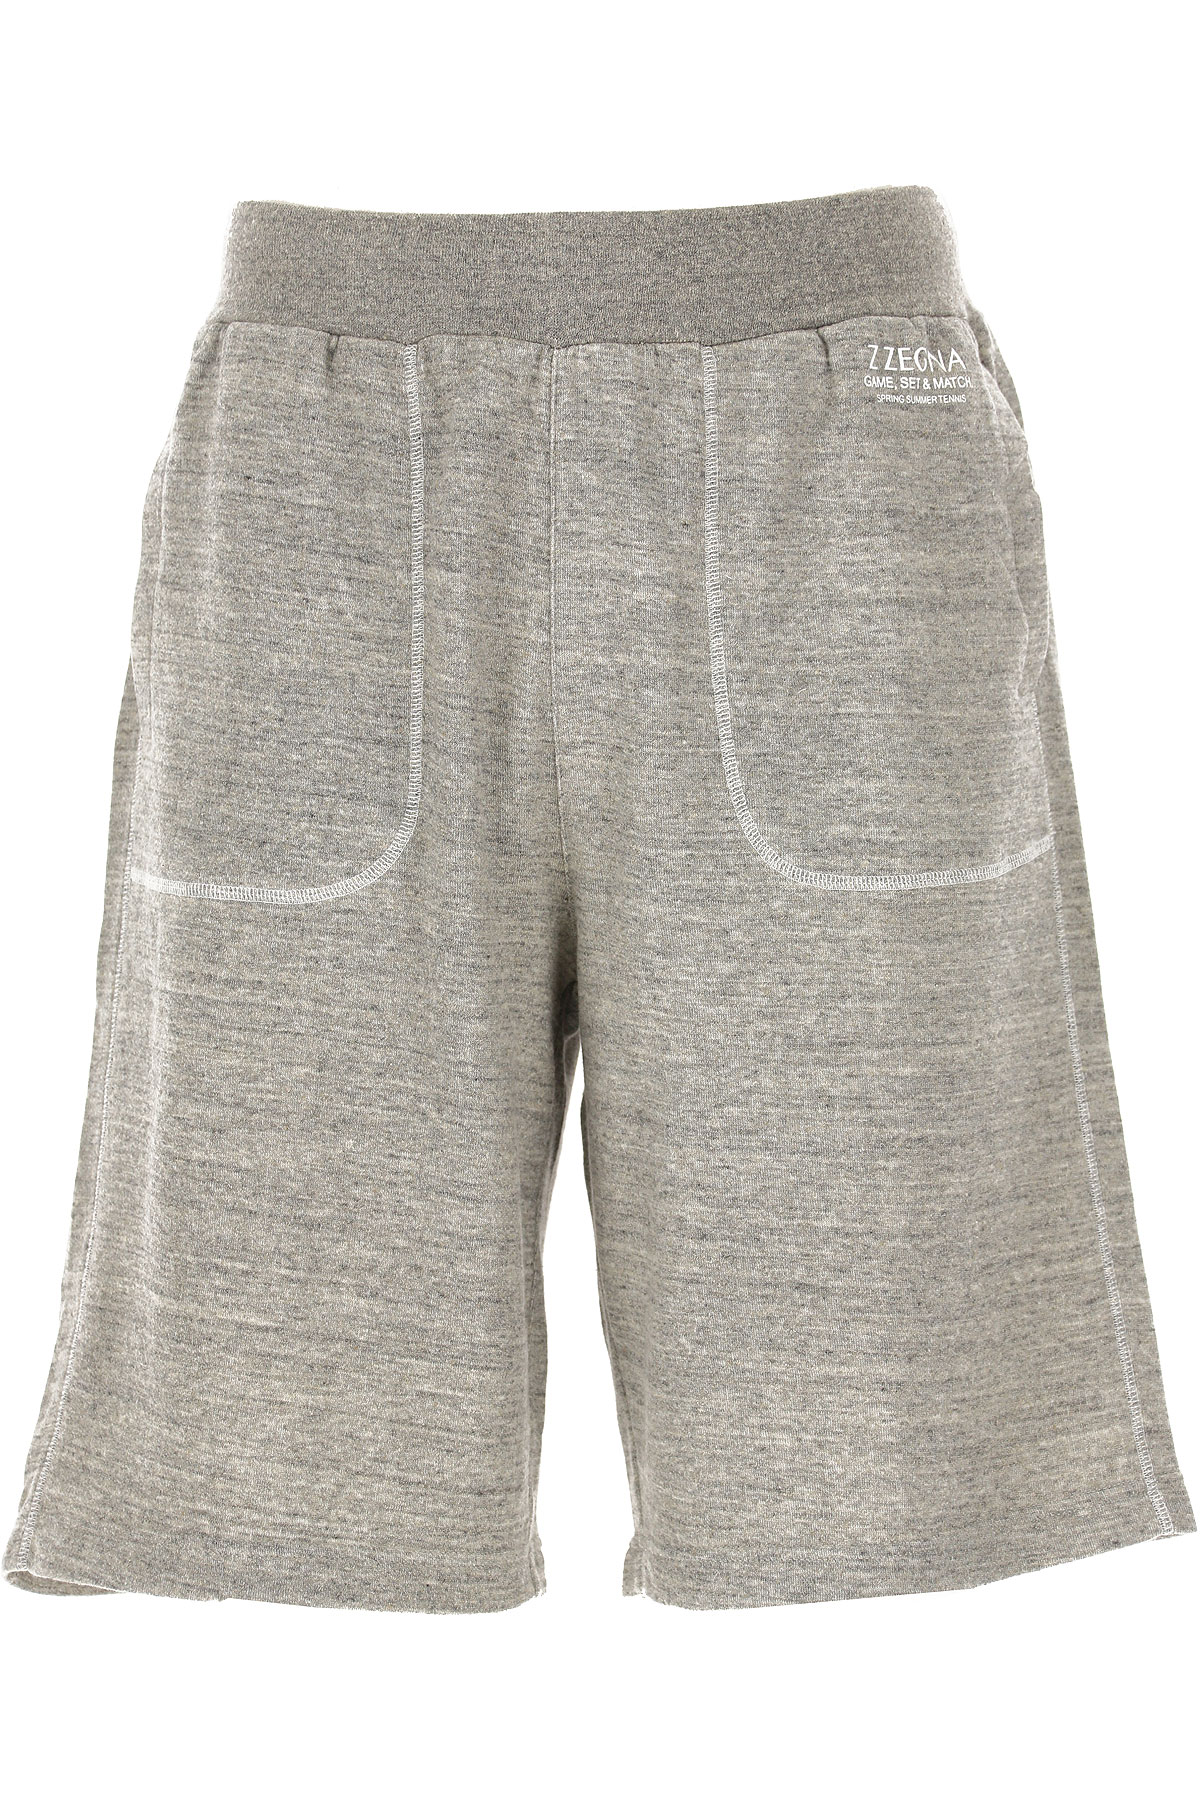 Ermenegildo Zegna Pants for Men On Sale in Outlet, Grey Melange, Cotton, 2019, L S